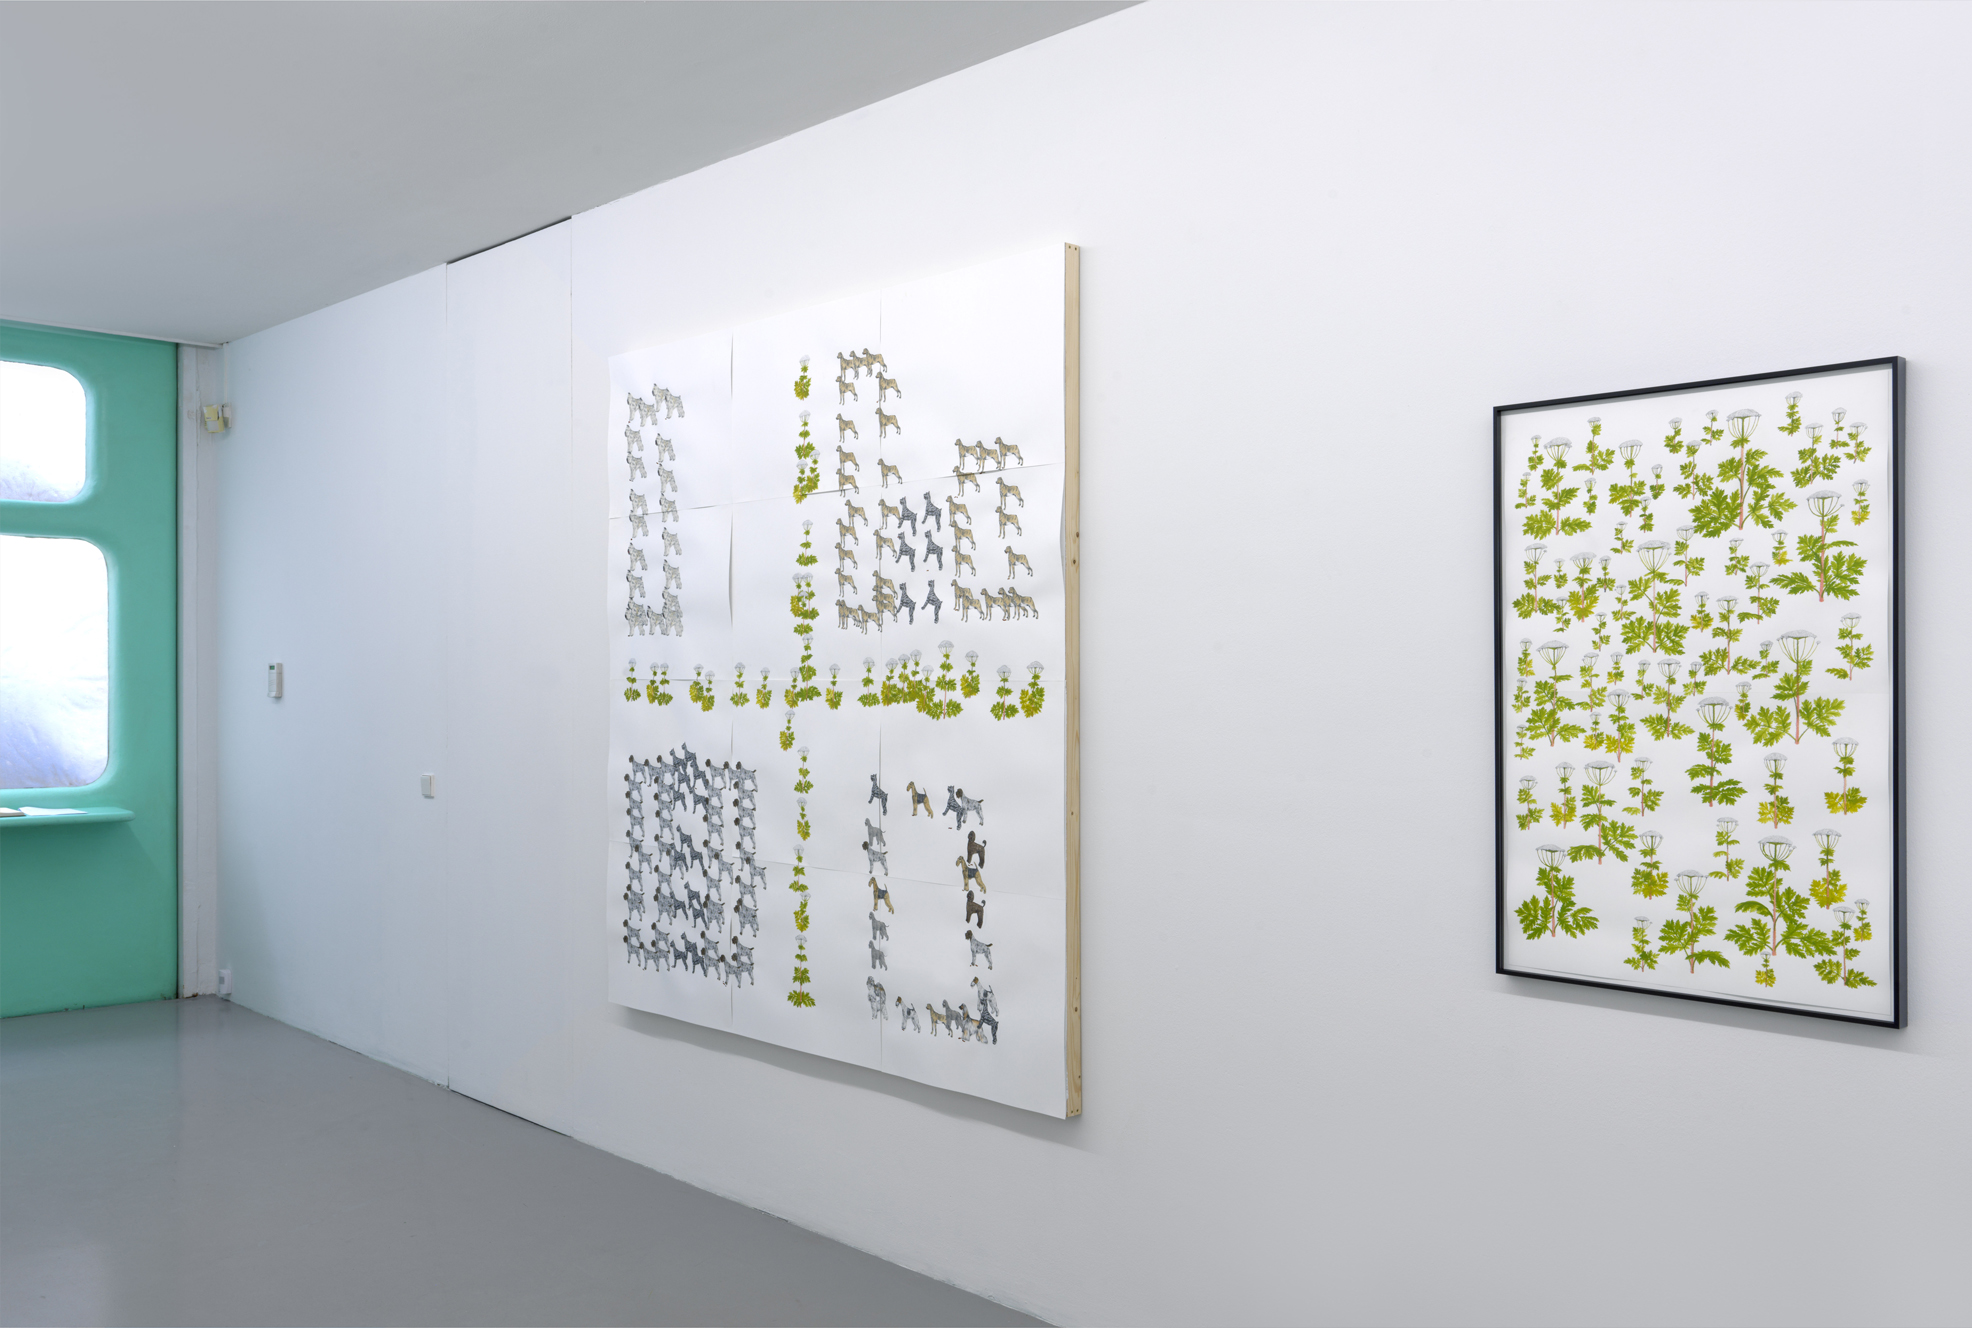 Tim Enthoven Repugnant Conclusion Installation View at Fons Welters Gallery, 2019